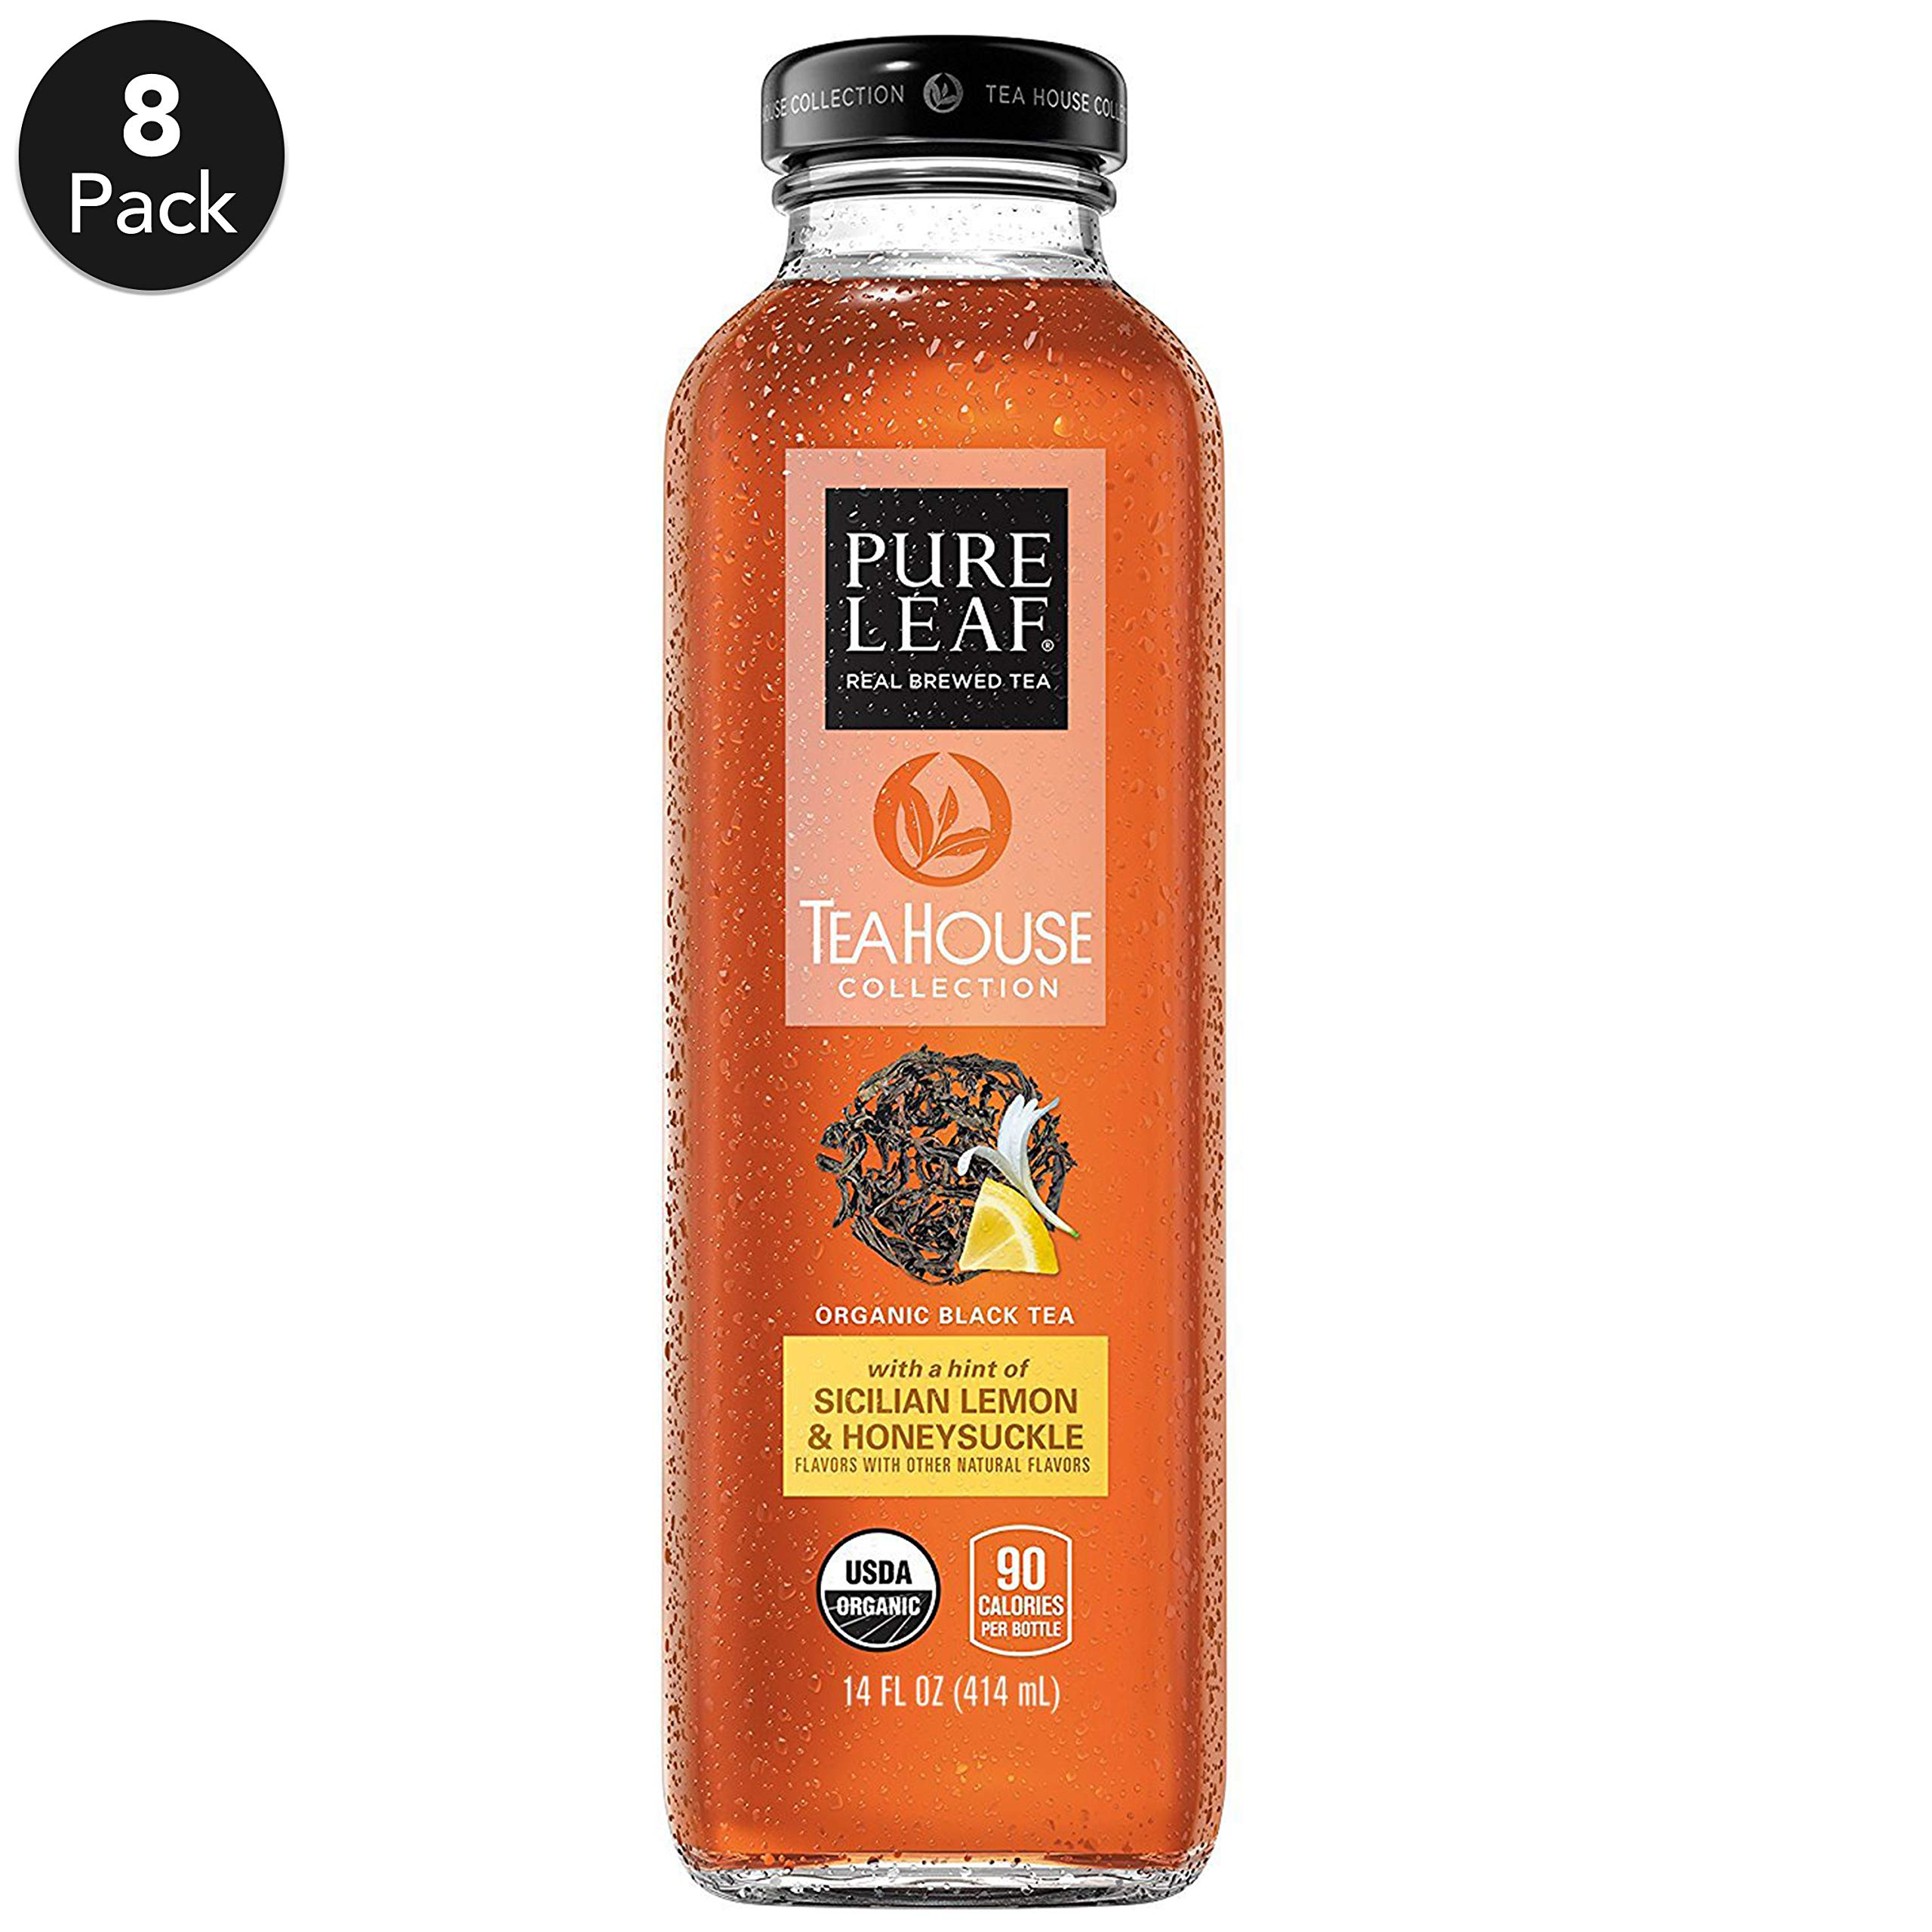 Pure Leaf, Tea House Collection, Organic Iced Tea, Sicilian Lemon & Honeysuckle, 14 fl oz. glass bottles (8 Pack)